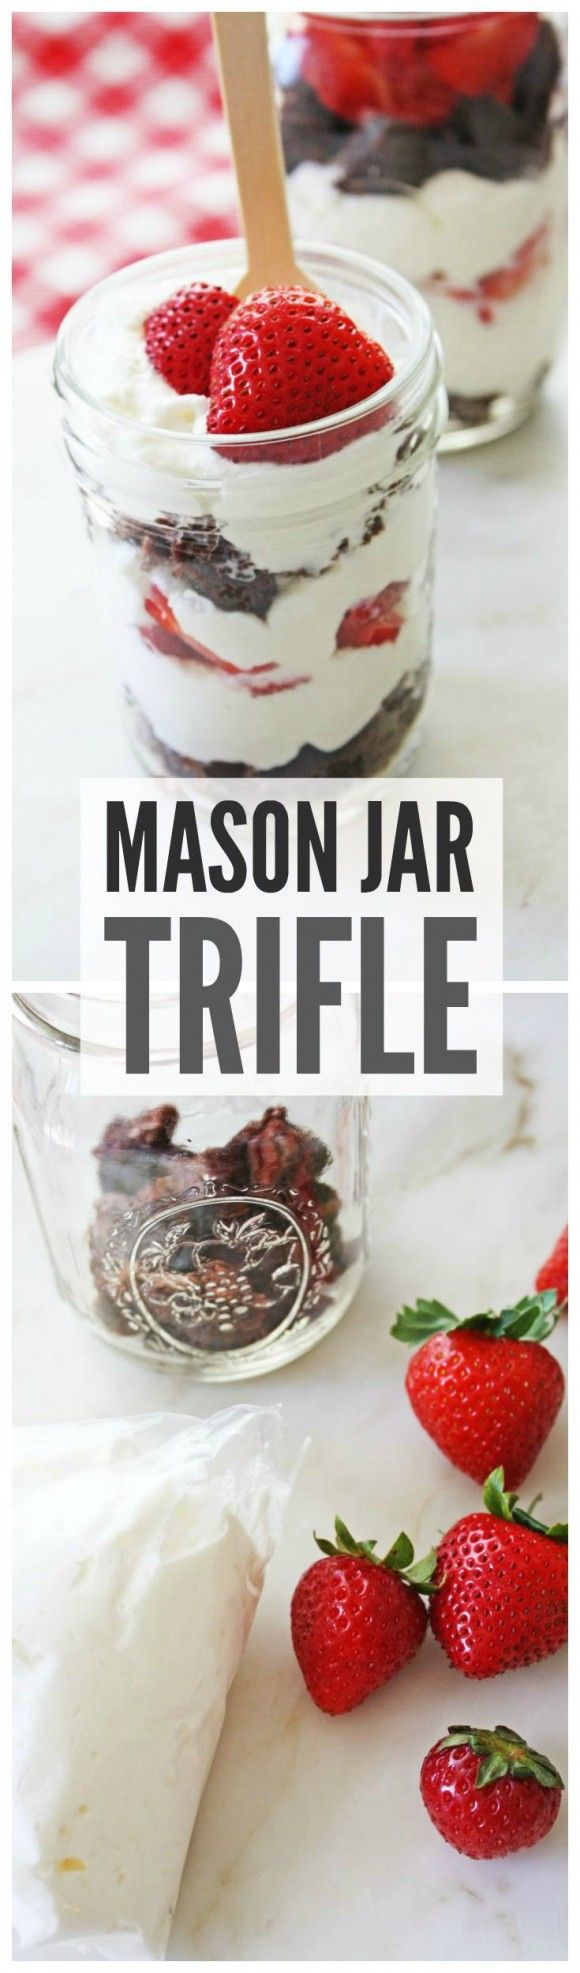 Mason jar trifle recipe made with brownies, strawberries and whipped cream. This is the perfect summer dessert! See more summer recipes at CatchMyParty.com.